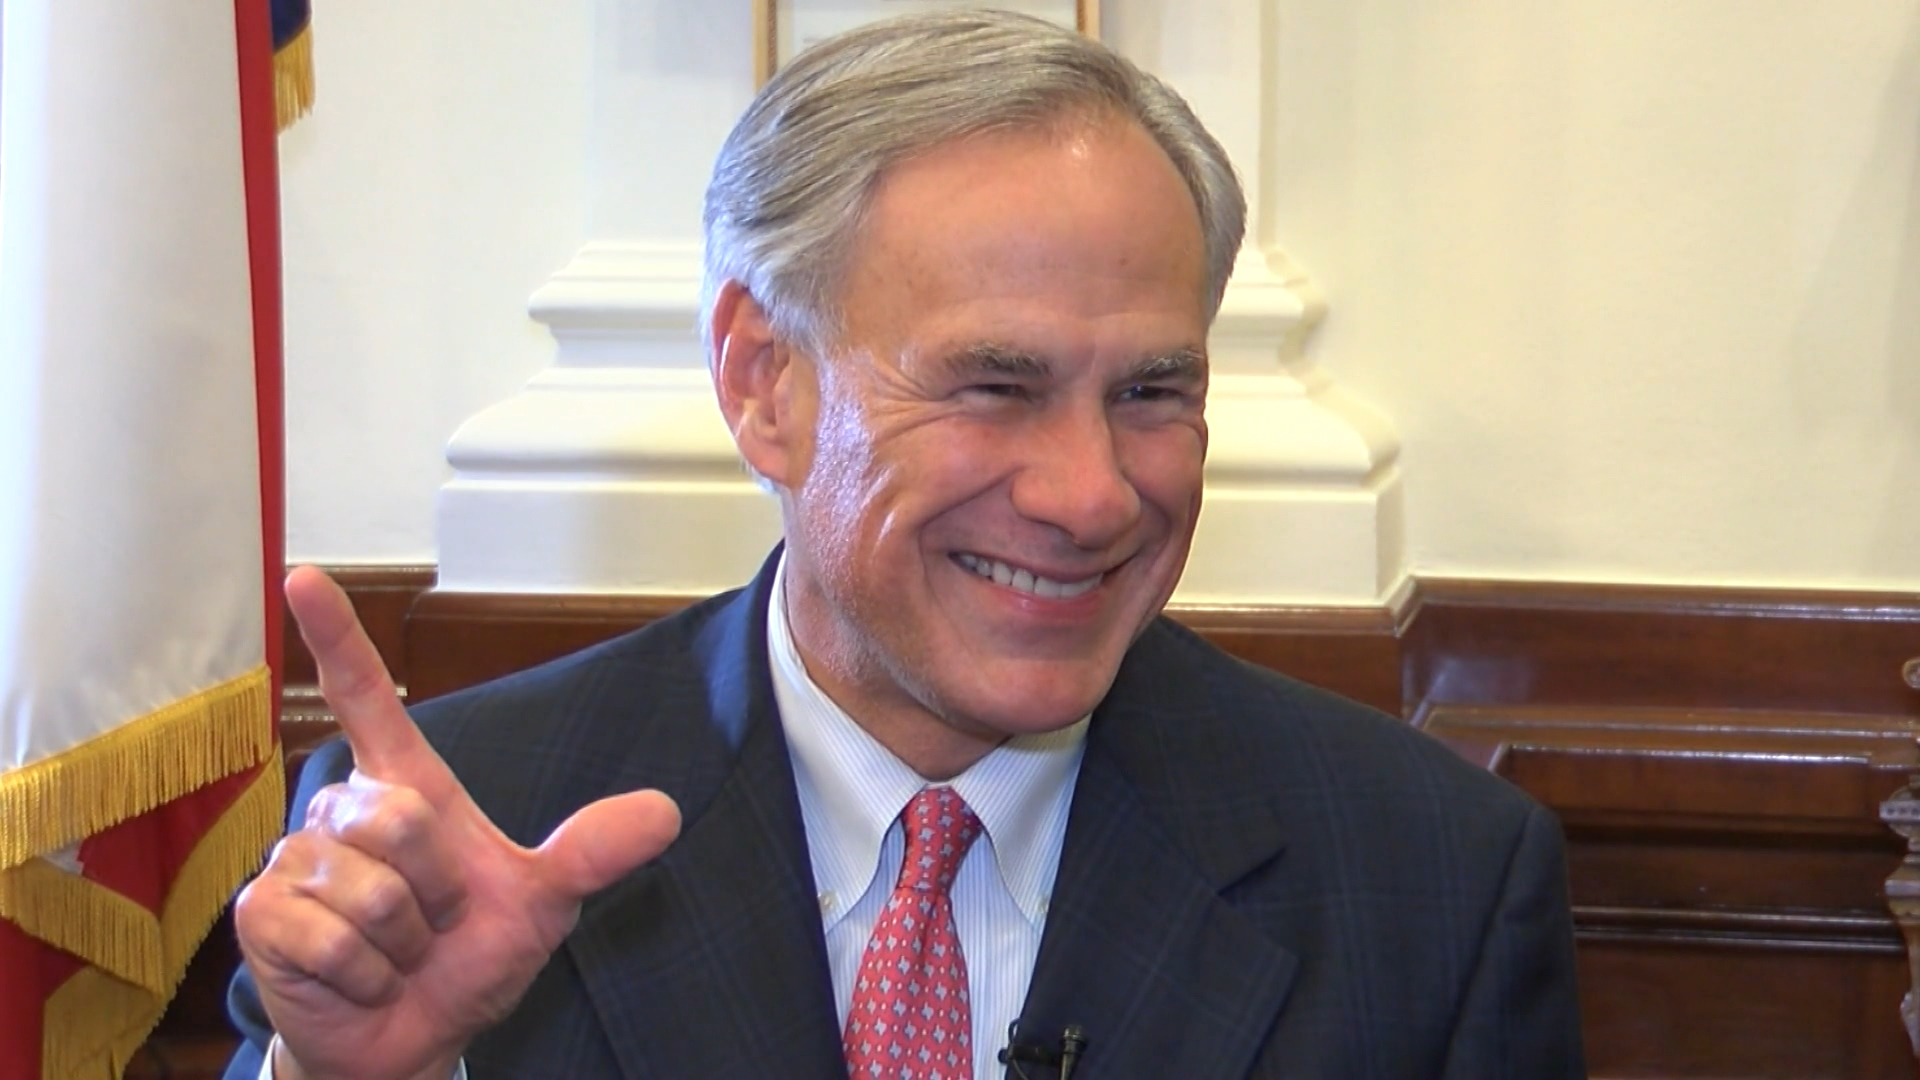 GOV GREG ABBOTT GUNS UP WRECK EM TEXAS TECH FINAL FOUR_1554409393162.jpg-846655081.jpg